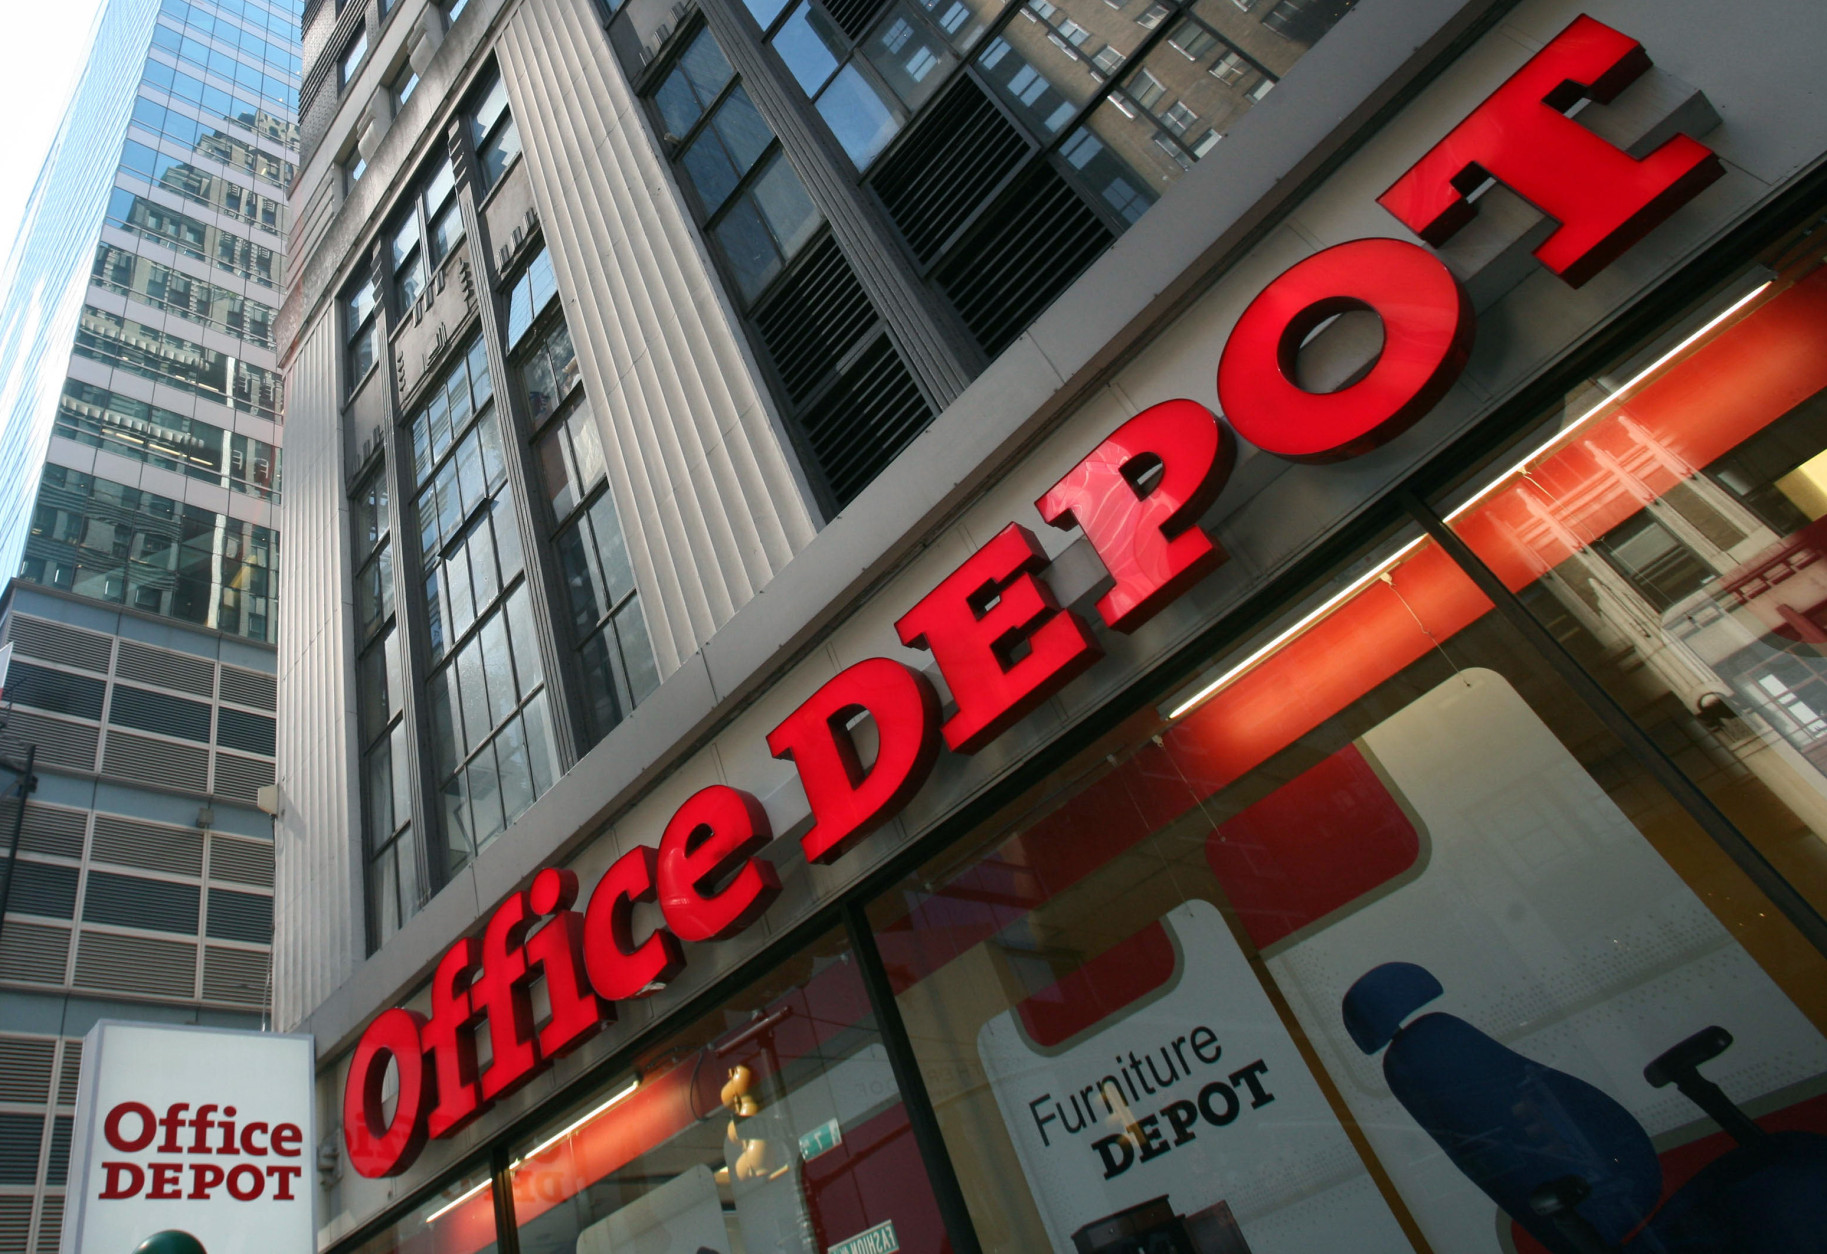 FILE - This June 2, 2008 file photo shows an Office Depot store on in New York. Staples on Wednesday, Feb. 4, 2015 announced it is buying Office Depot in a cash-and-stock deal valued at nearly $6 billion. (AP Photo/Mark Lennihan, File)